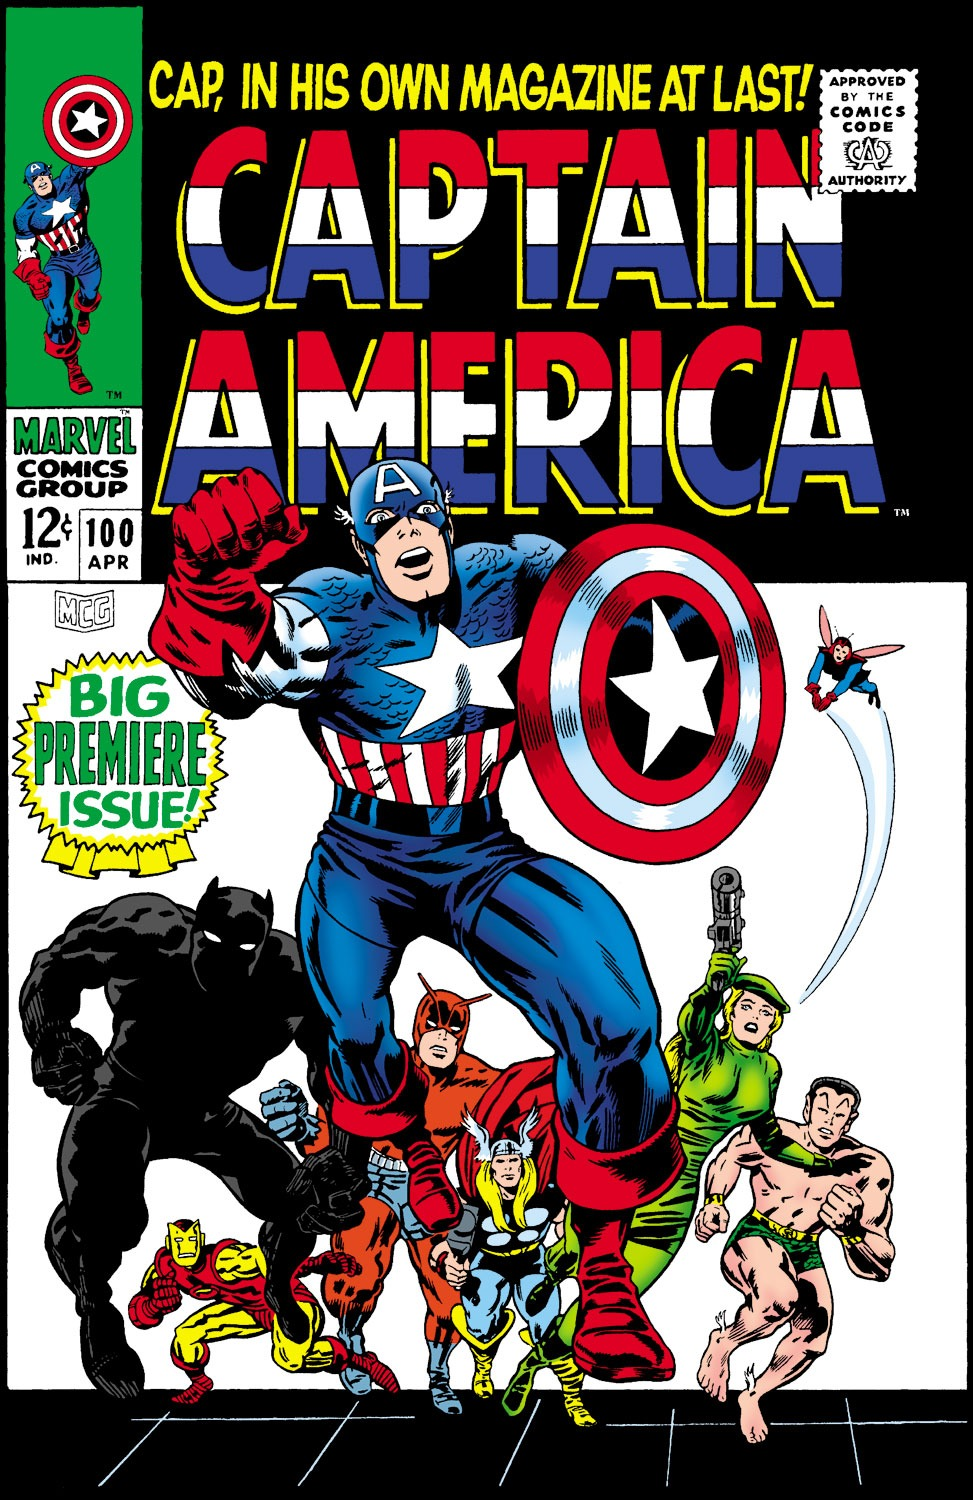 http://images.wikia.com/marveldatabase/images/1/10/Captain_America_Vol_1_100.jpg